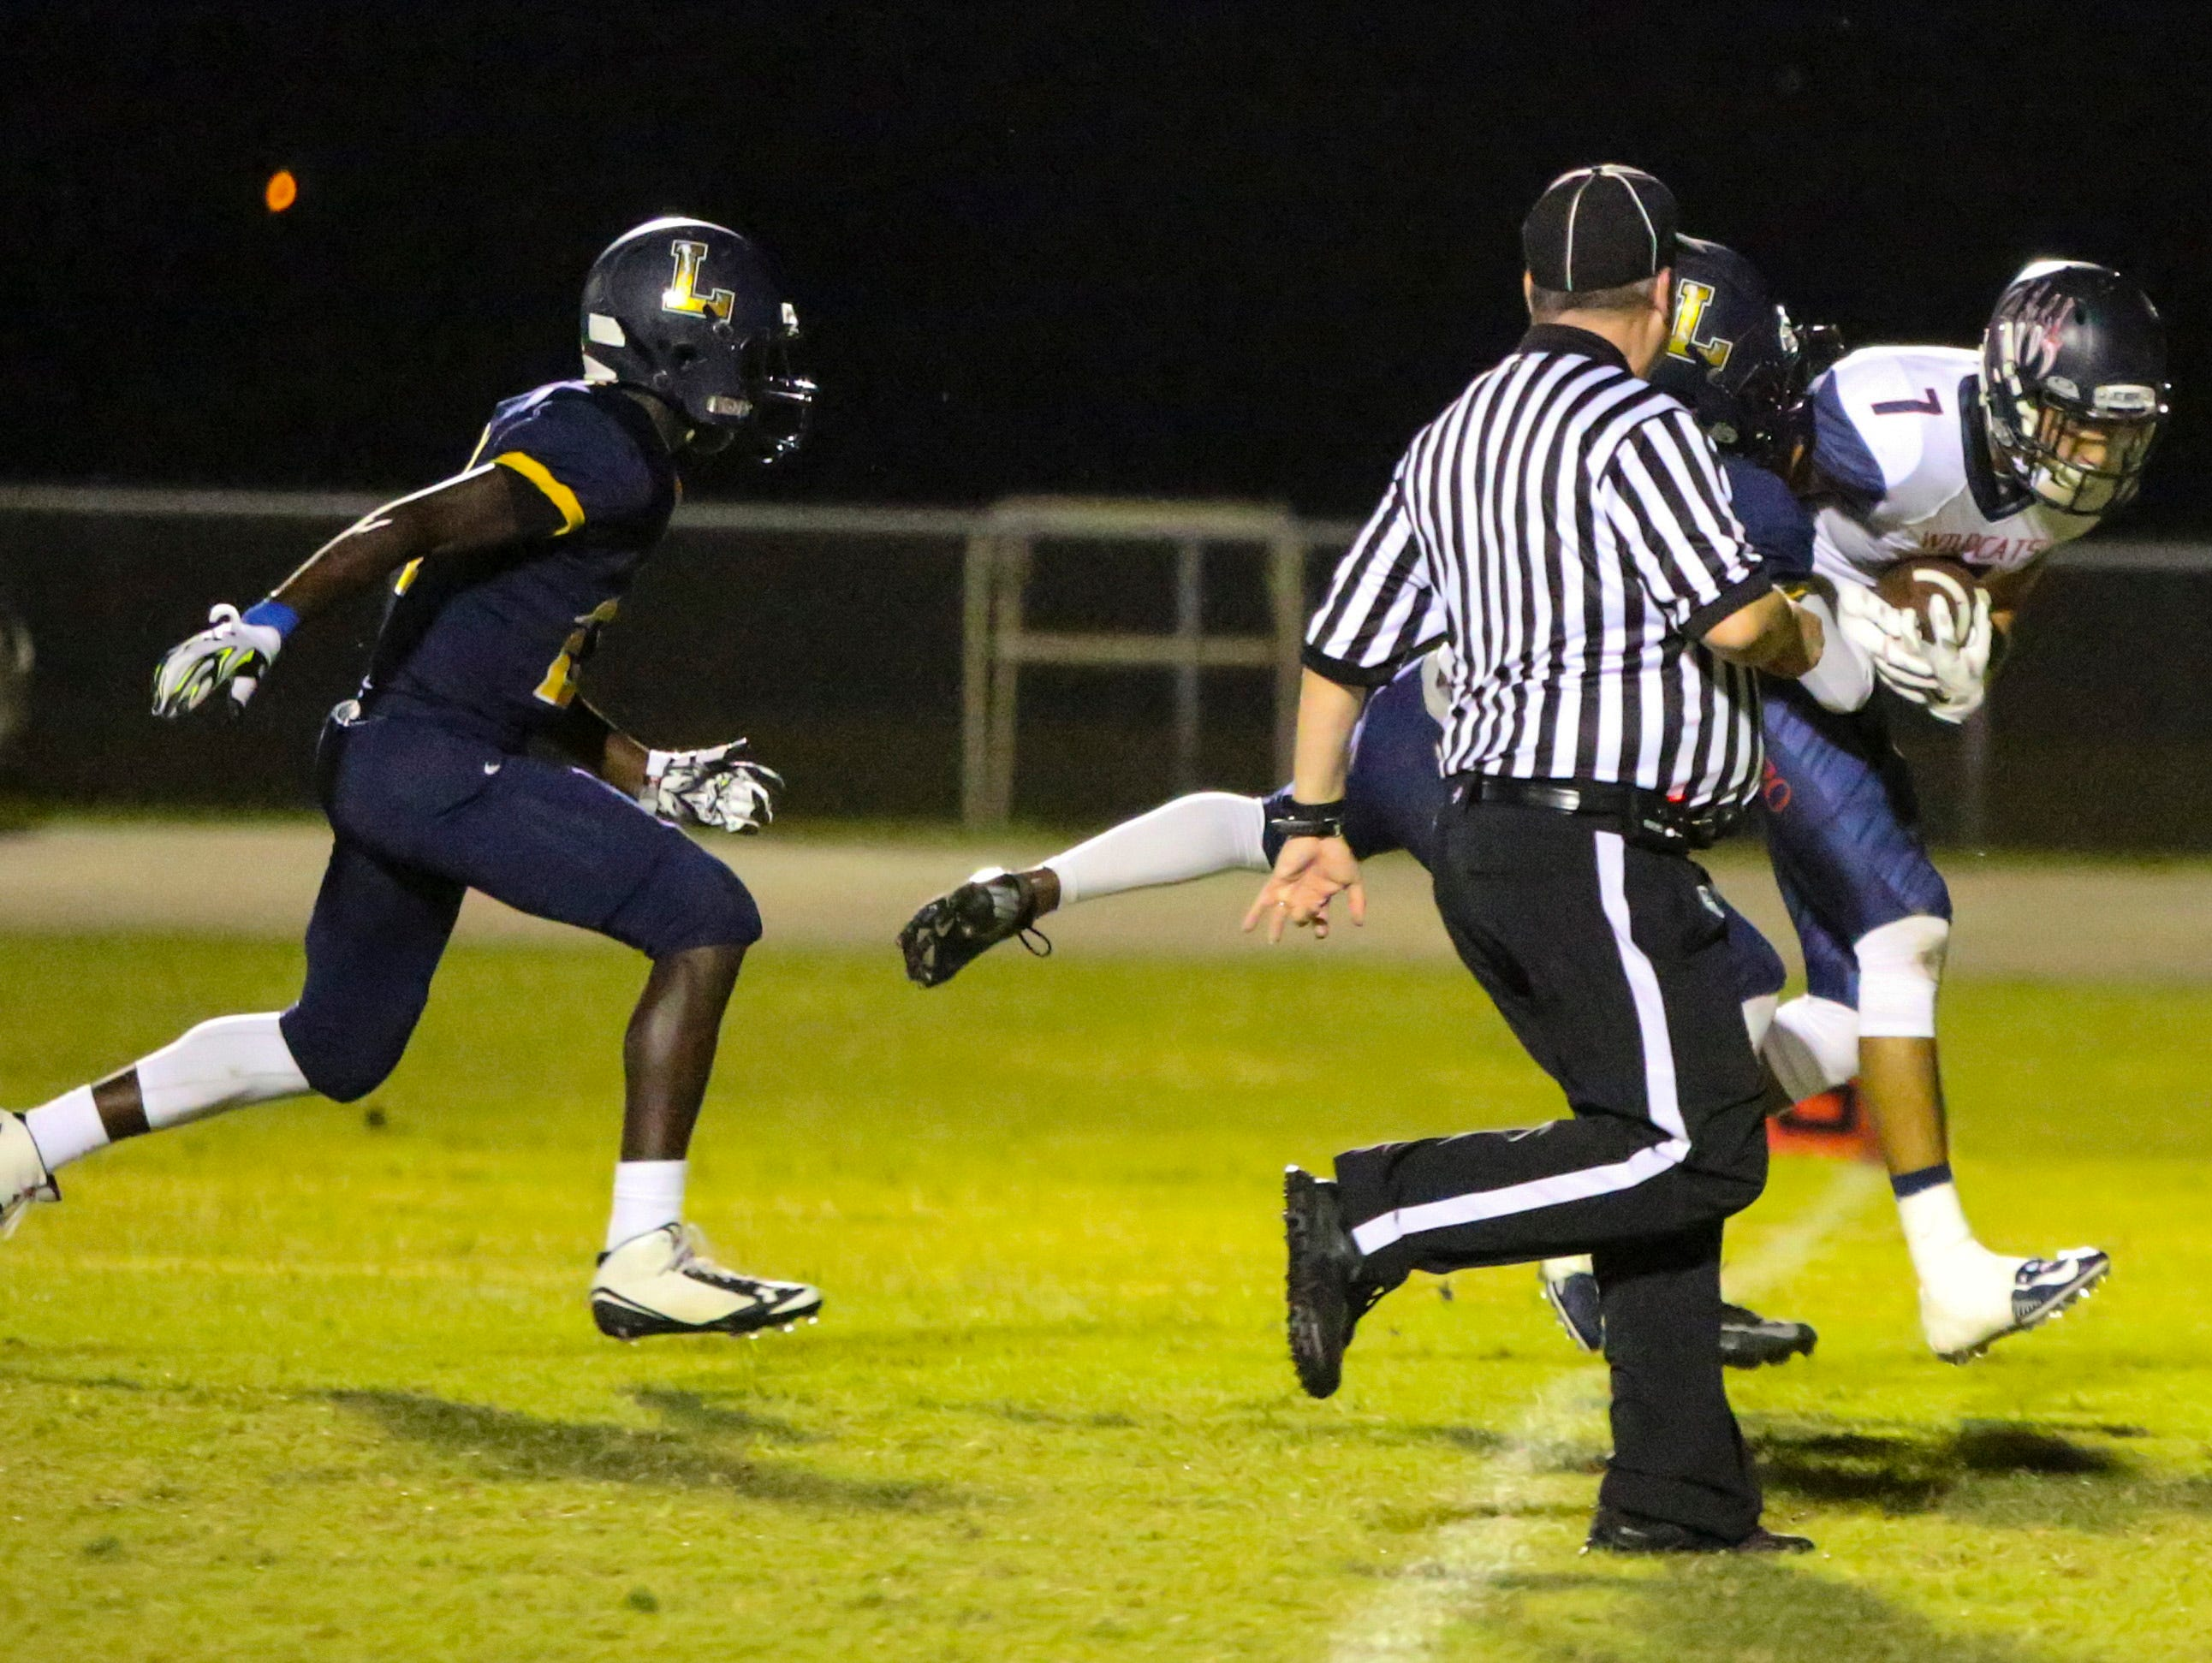 Ester's JC Correll makes the catch to score early in their game against Lehigh. Estero went on to win 21-7.